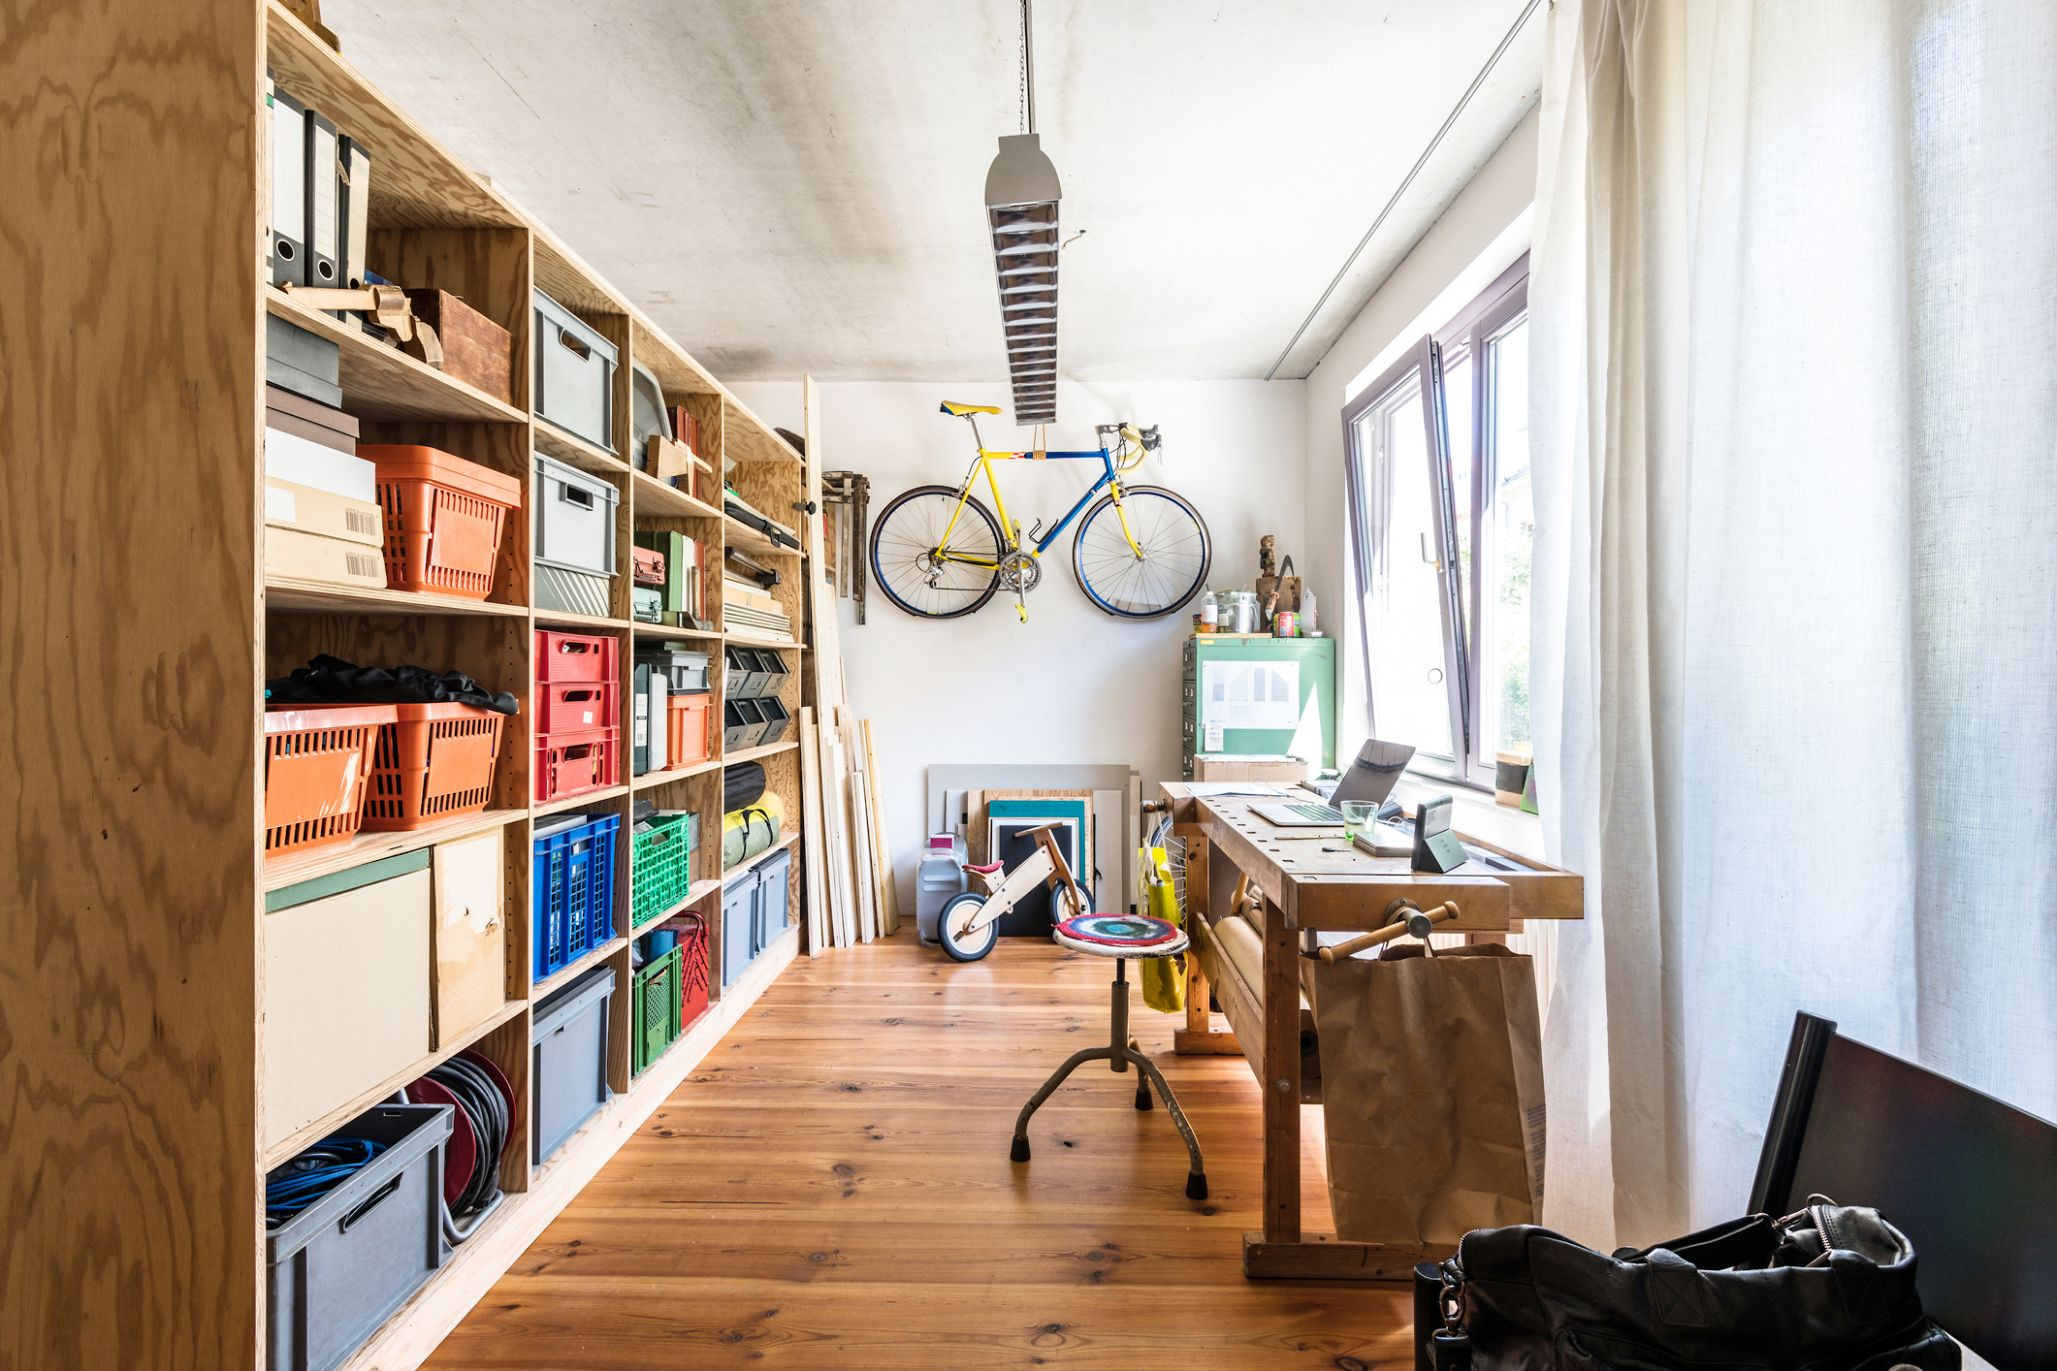 11 Modern and Chic Ideas for Your Home Office - Freshome - decorating your home office ideas